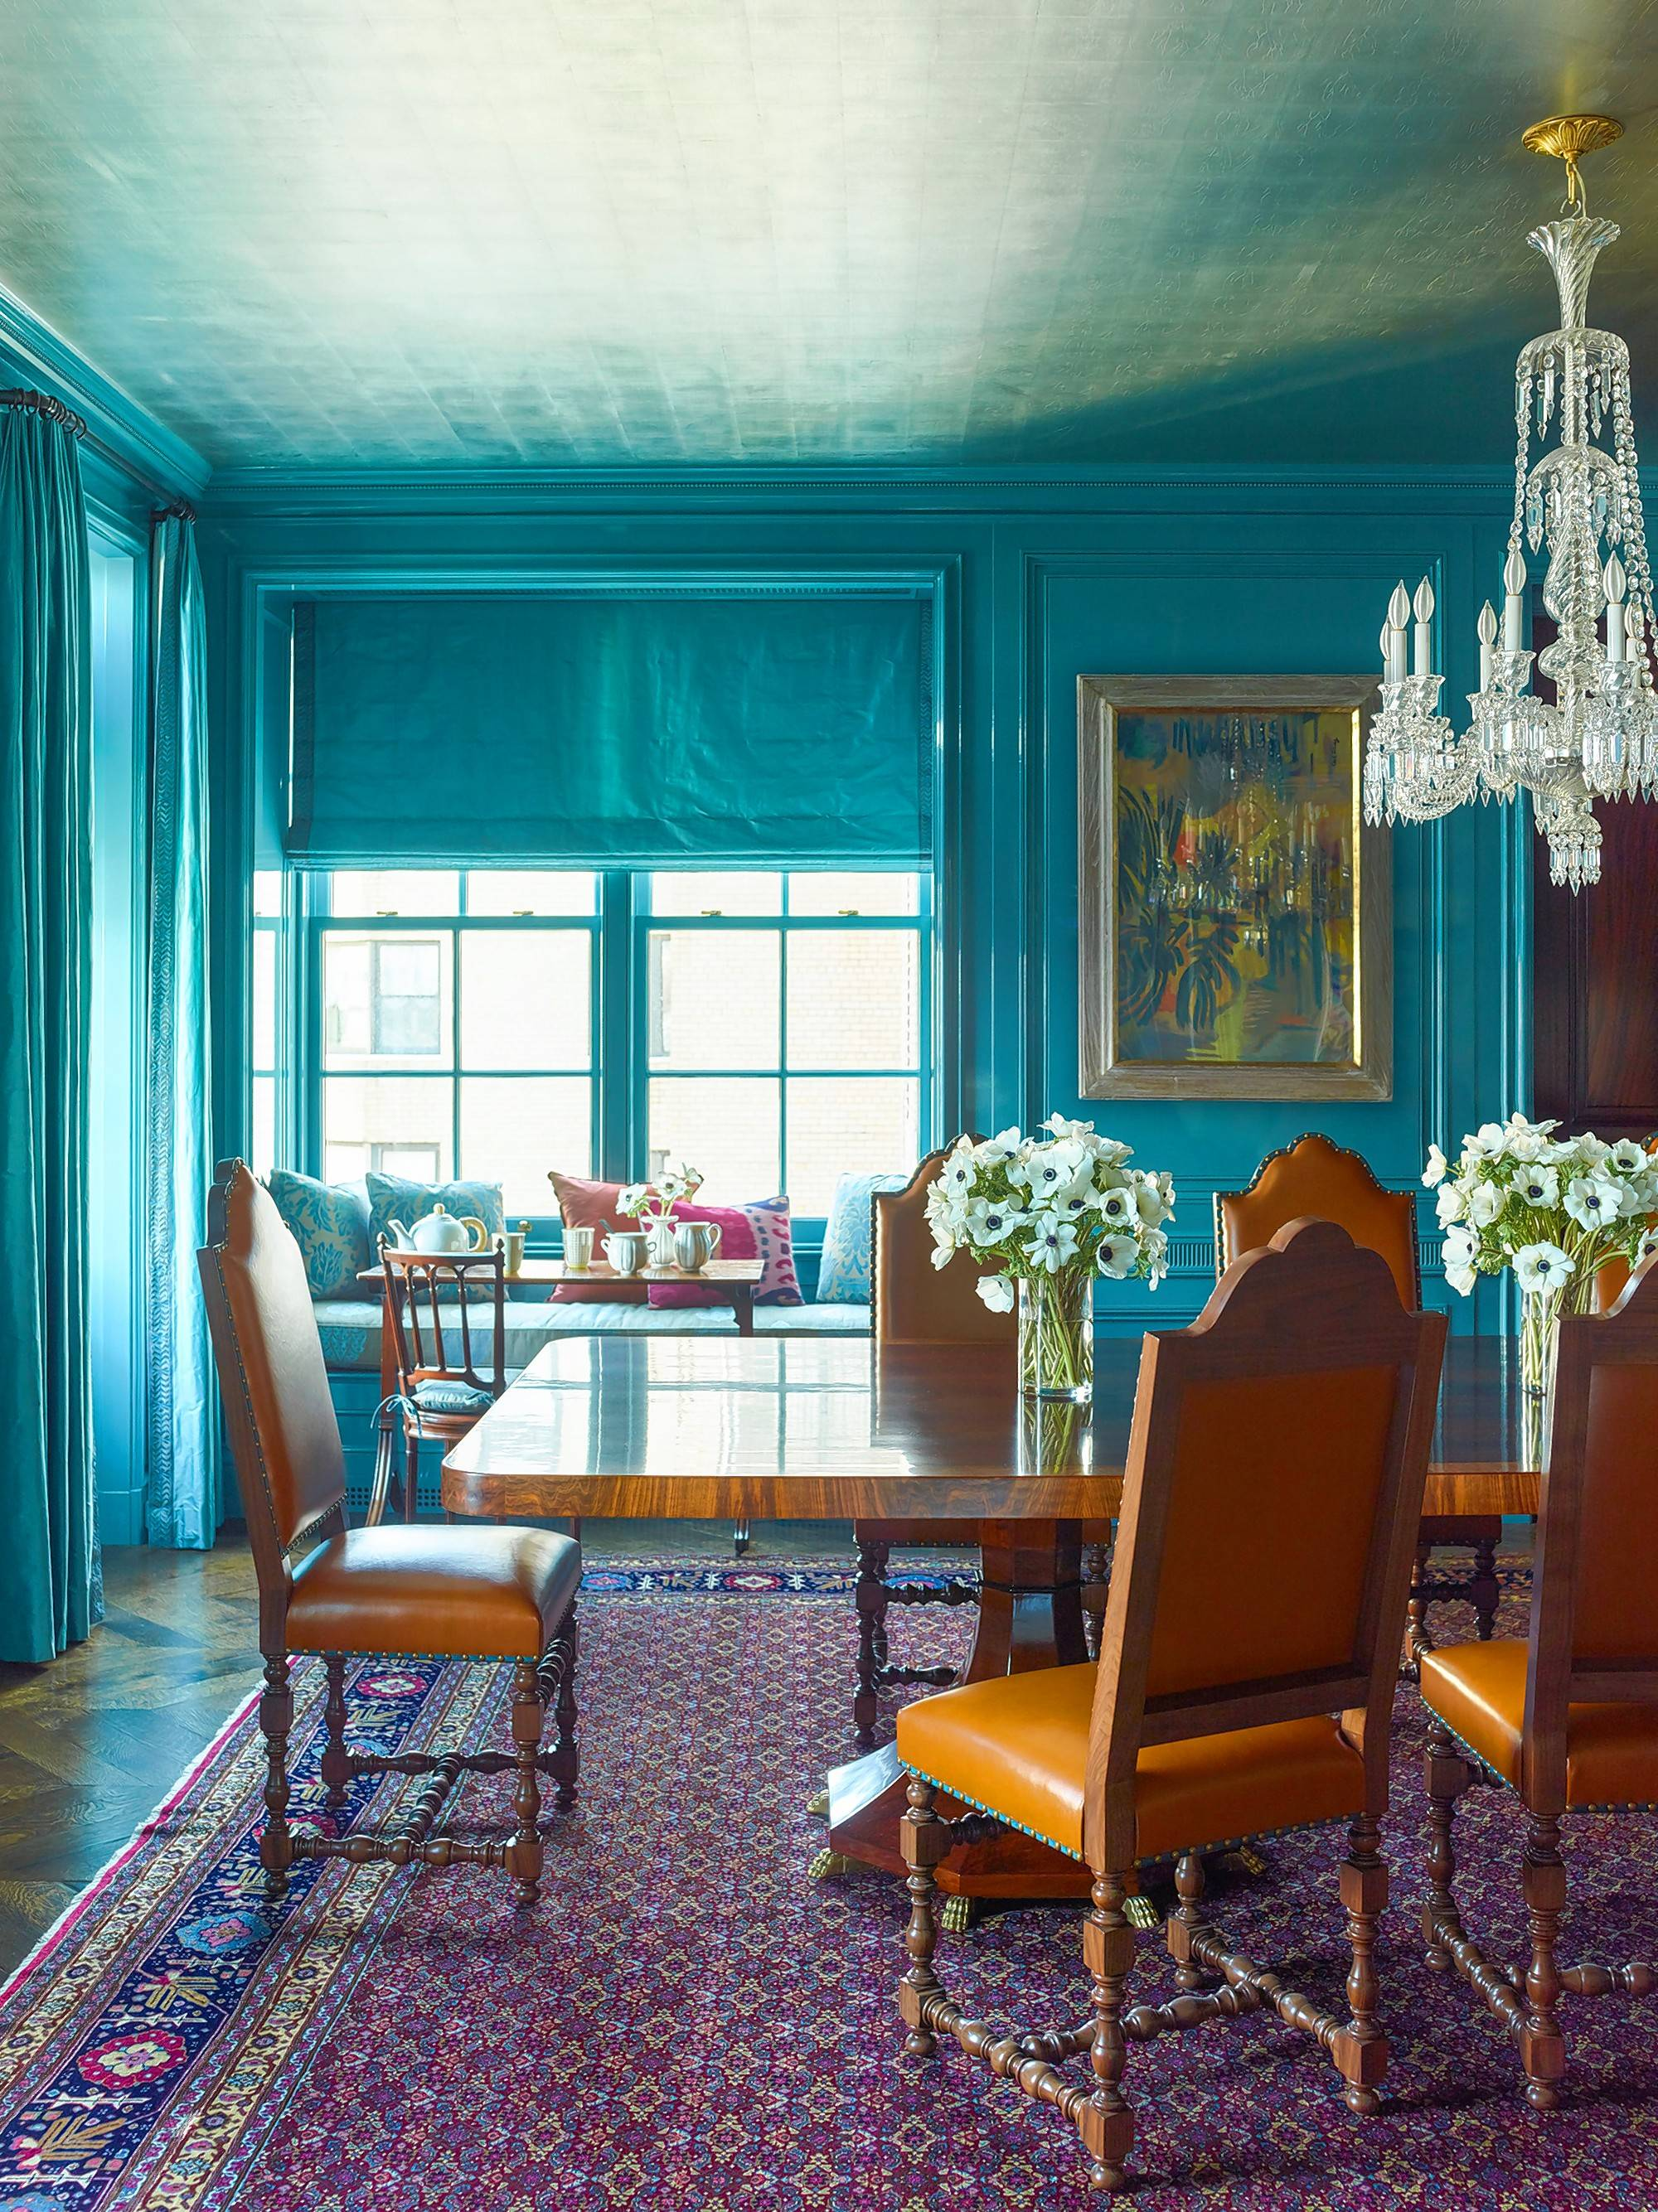 Katie Ridder updates a historic apartment in Manhattan with turquoise lacquered walls and a silver-leaf ceiling.